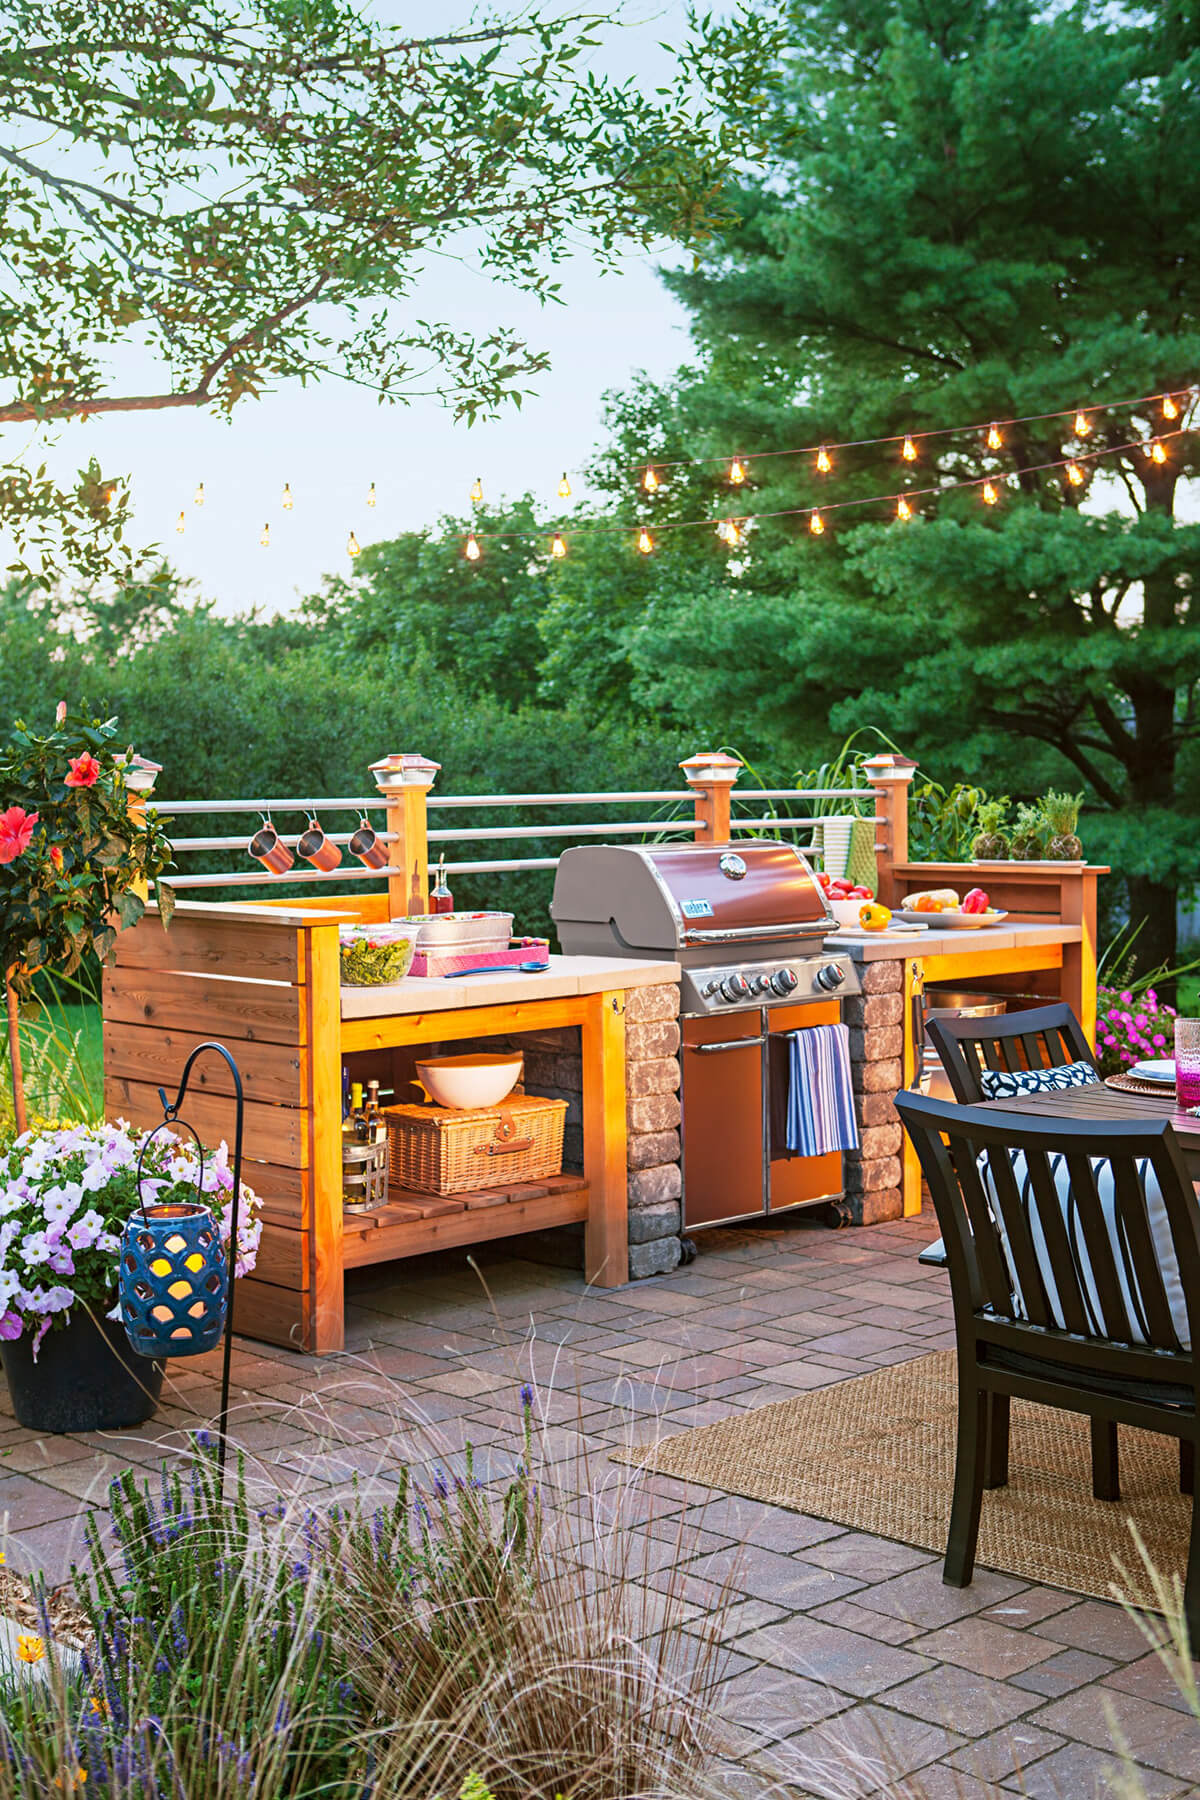 50+ Exquisite Outdoor Kitchen Ideas for Perfect Family ...